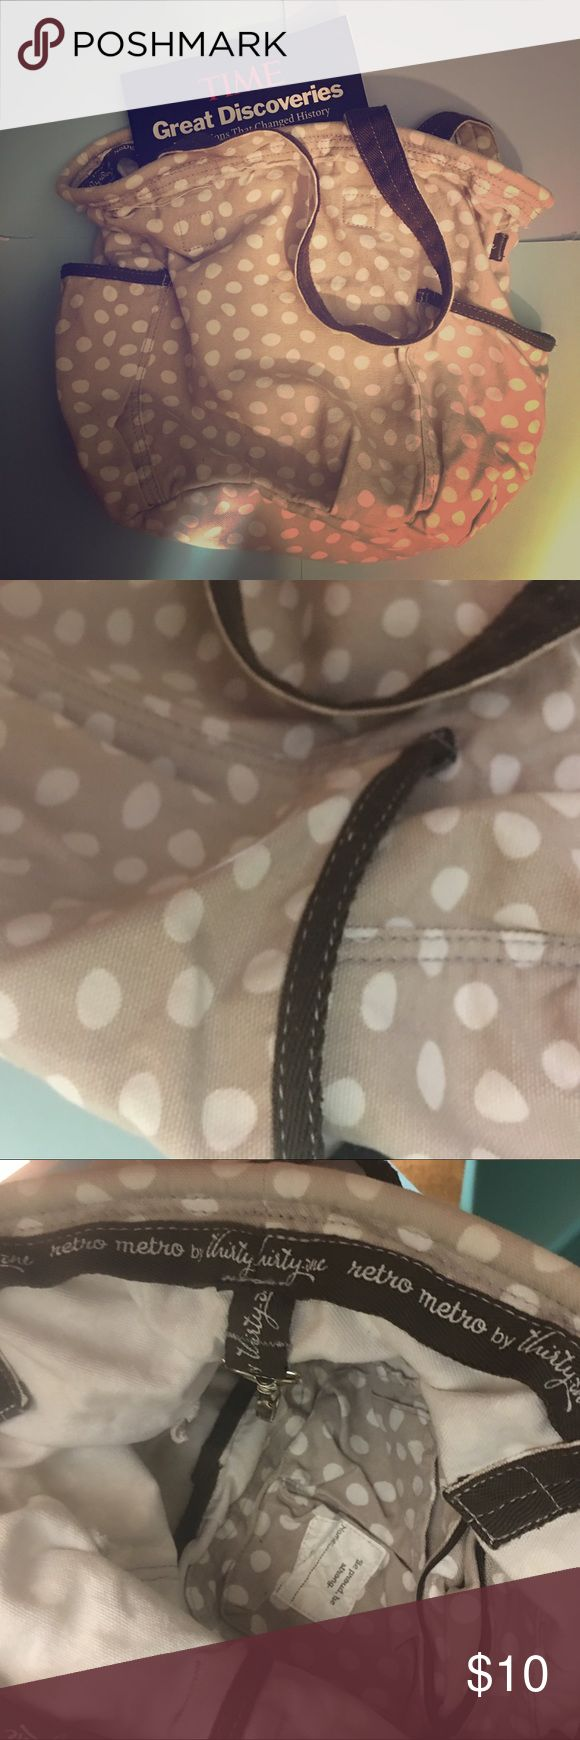 """Tan Thirty-One Retro Metro Tote Canvas material- Tan with white dots- Retro Metro Tote """" could be bucket purse or small tote. Multiple inside pockets & hook inside to attach car keys, etc  Good used condition 31 Gifts Bags Totes"""